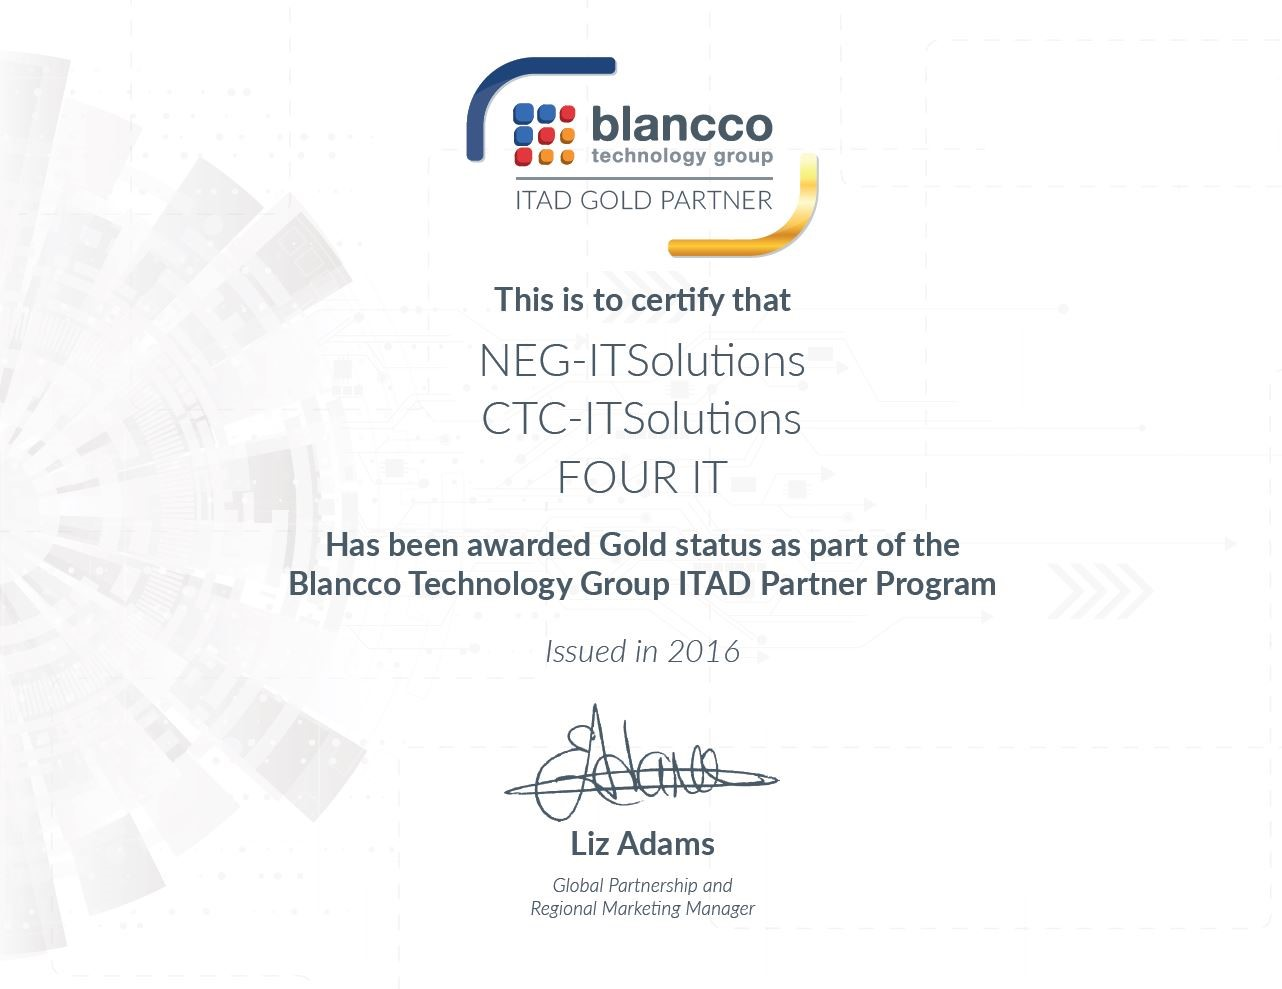 Blancco Certificate of Verification